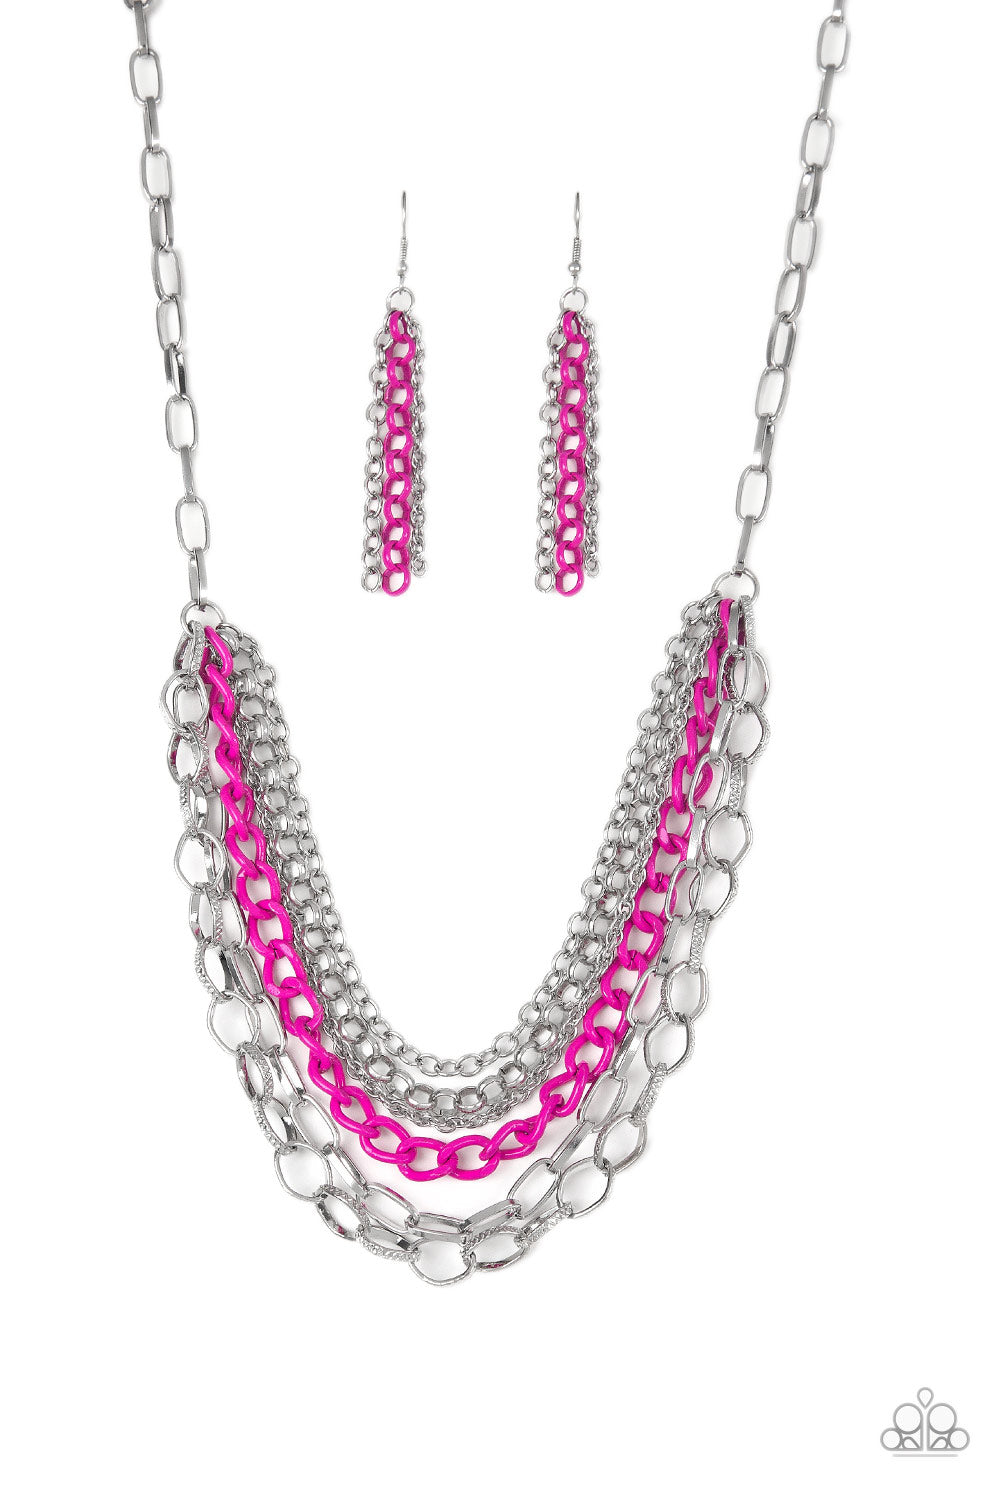 Color Bomb - Pink Necklace - The Paparazzi Fox